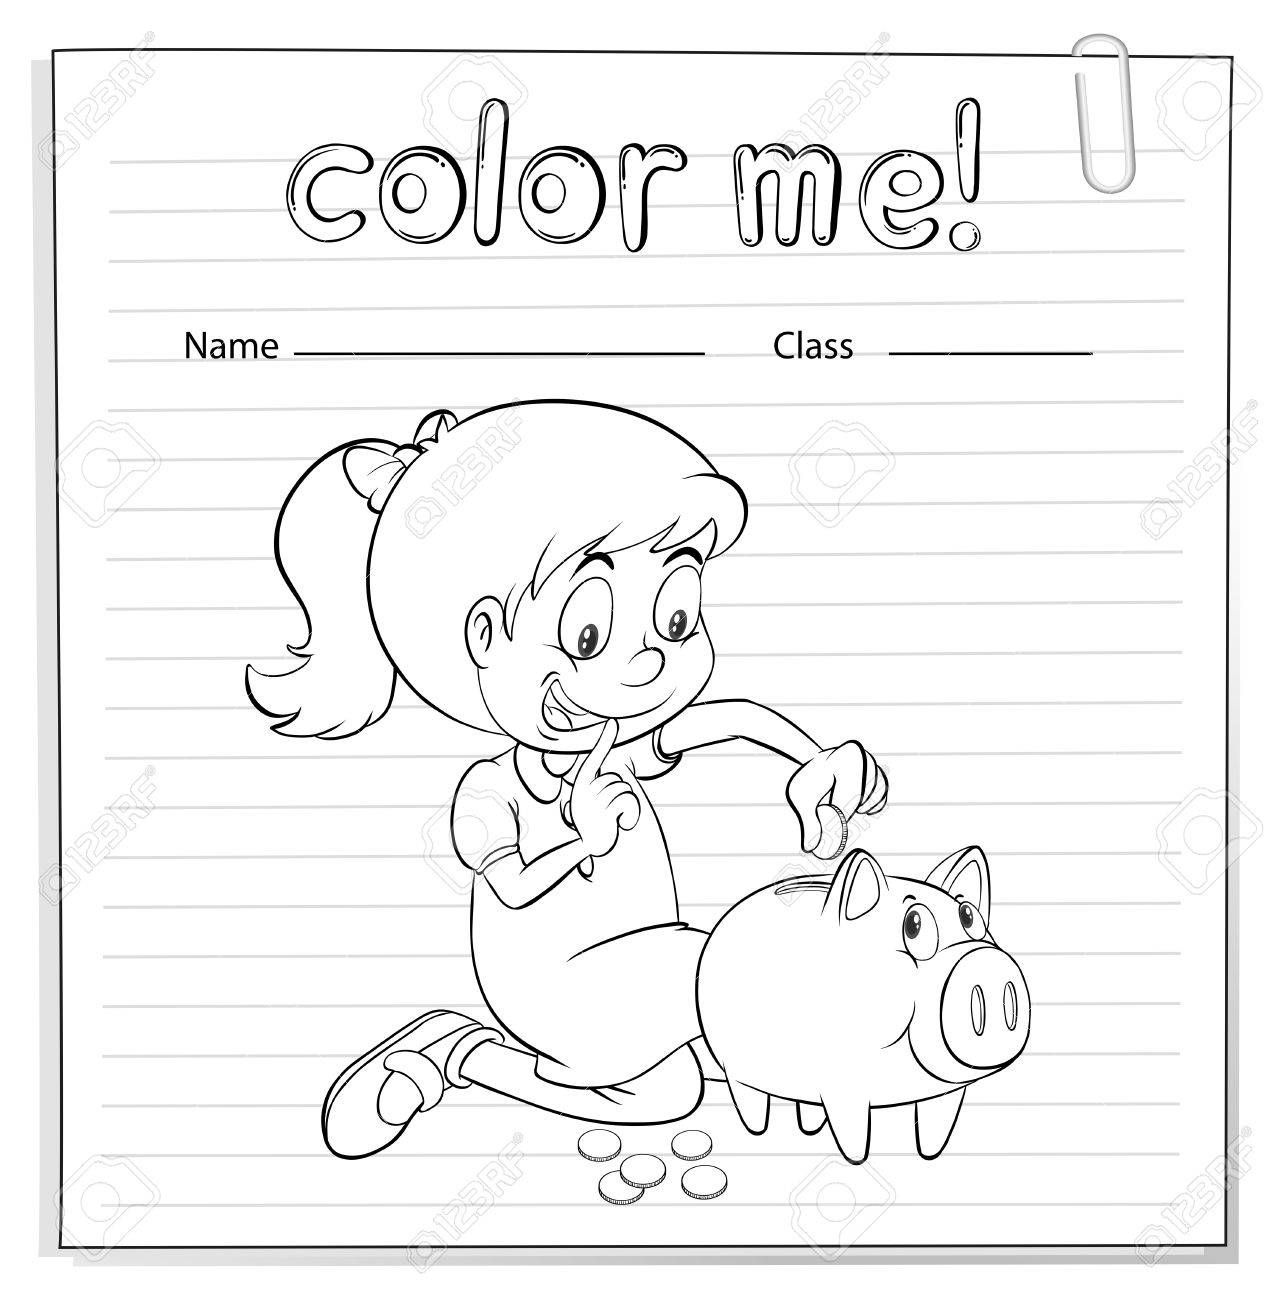 Worksheet Showing A Thrifty Little Girl On A White Background – Vector Worksheet